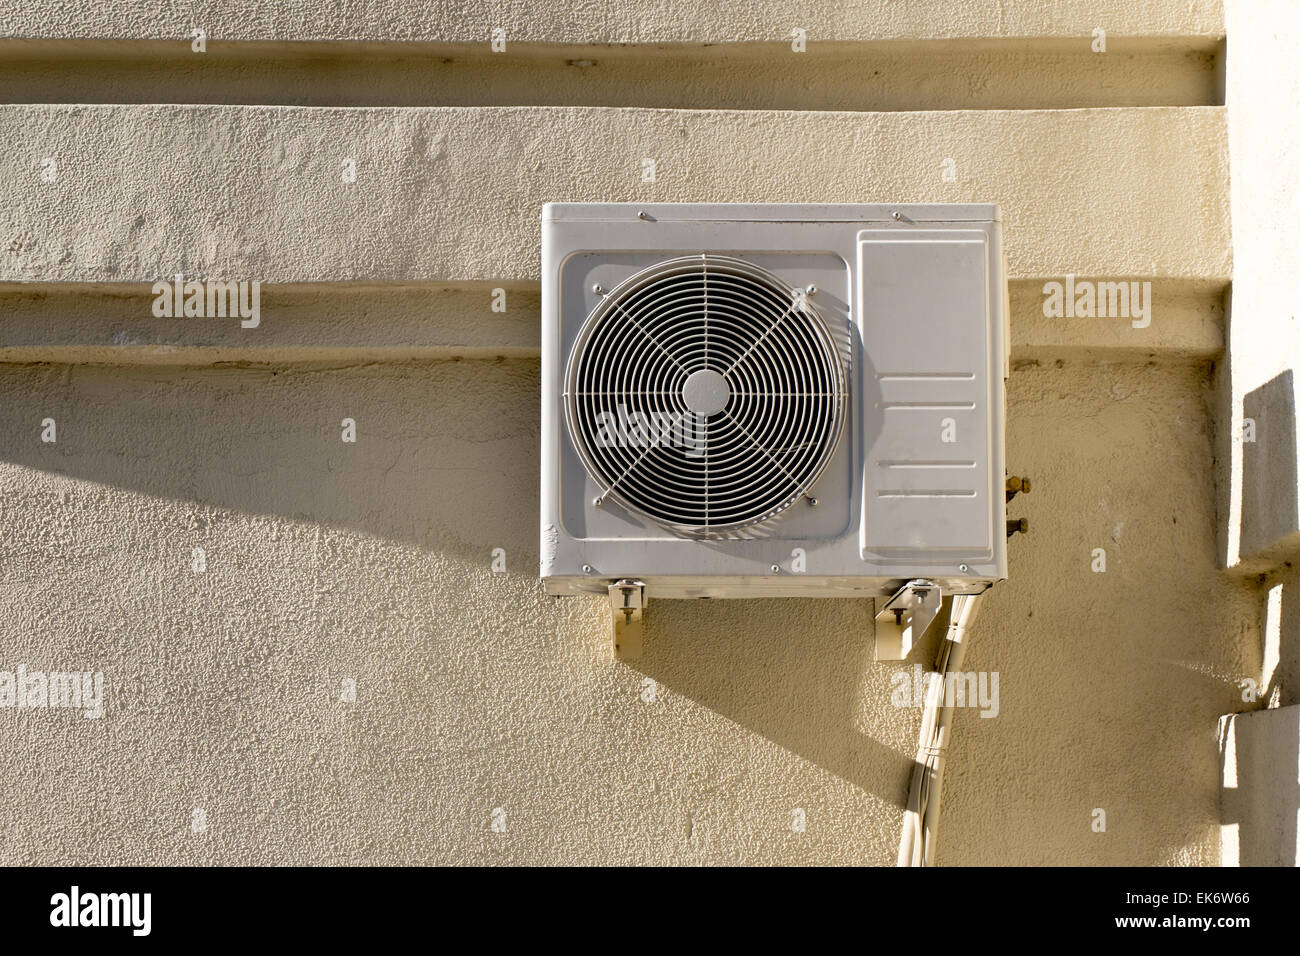 Air conditioner on the wall outdoors in summer. A lot of copyspace near system. Stock Photo